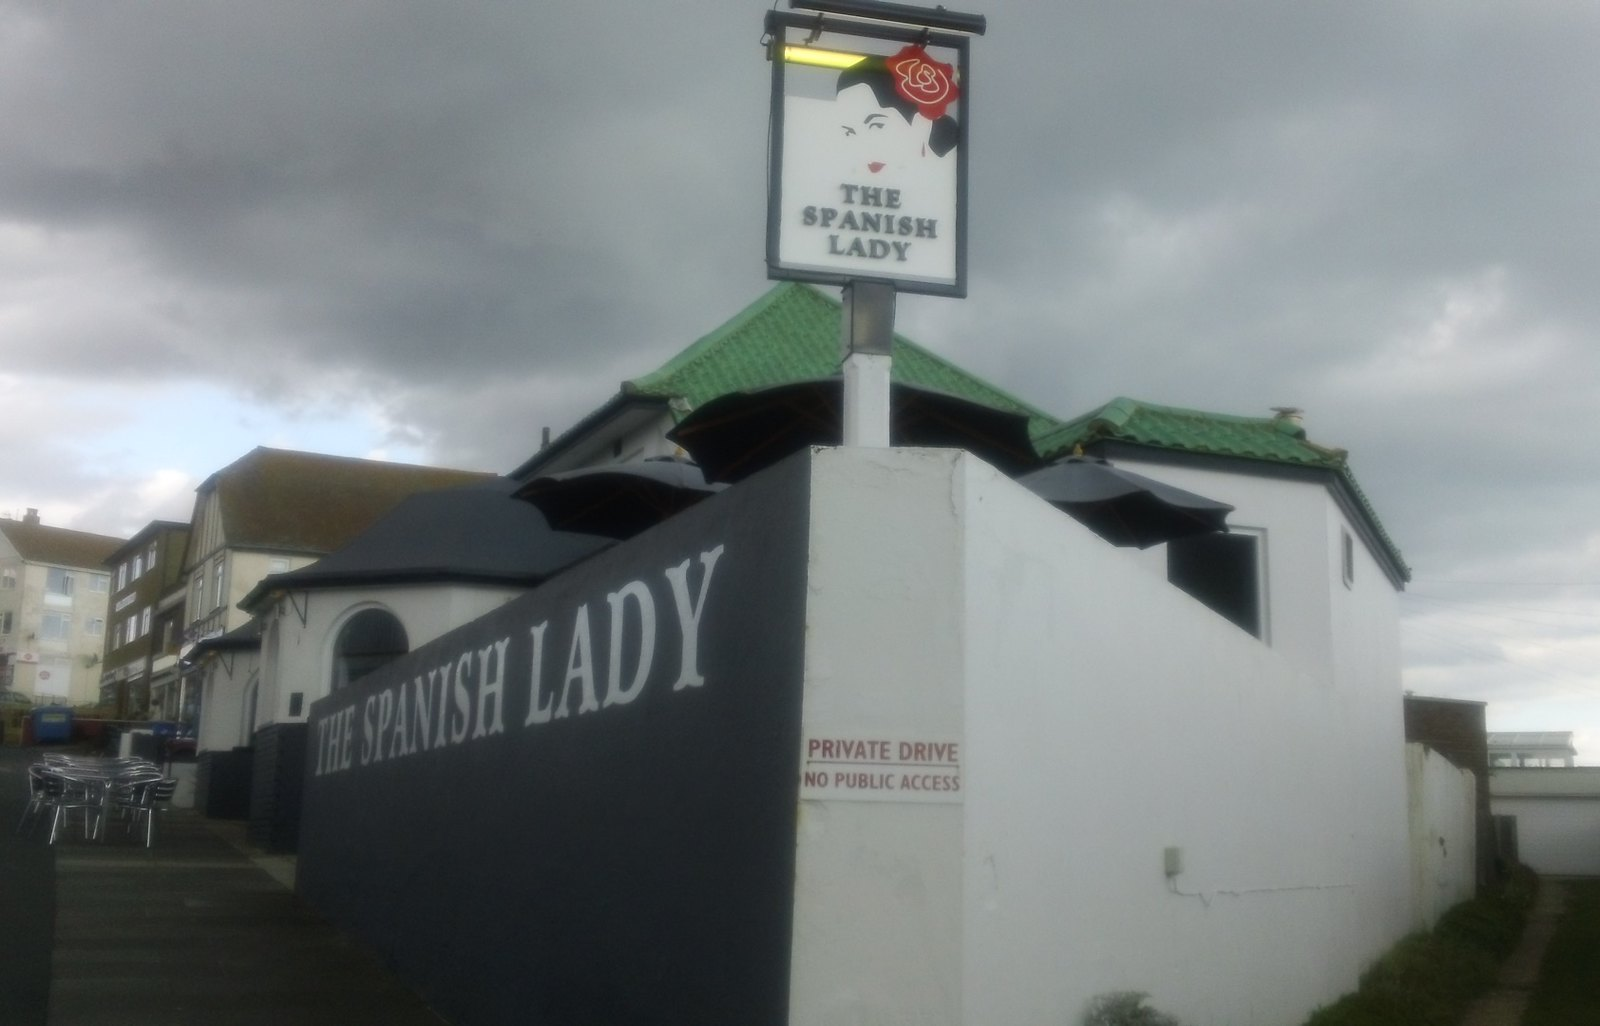 The Spanish Lady Saltdean